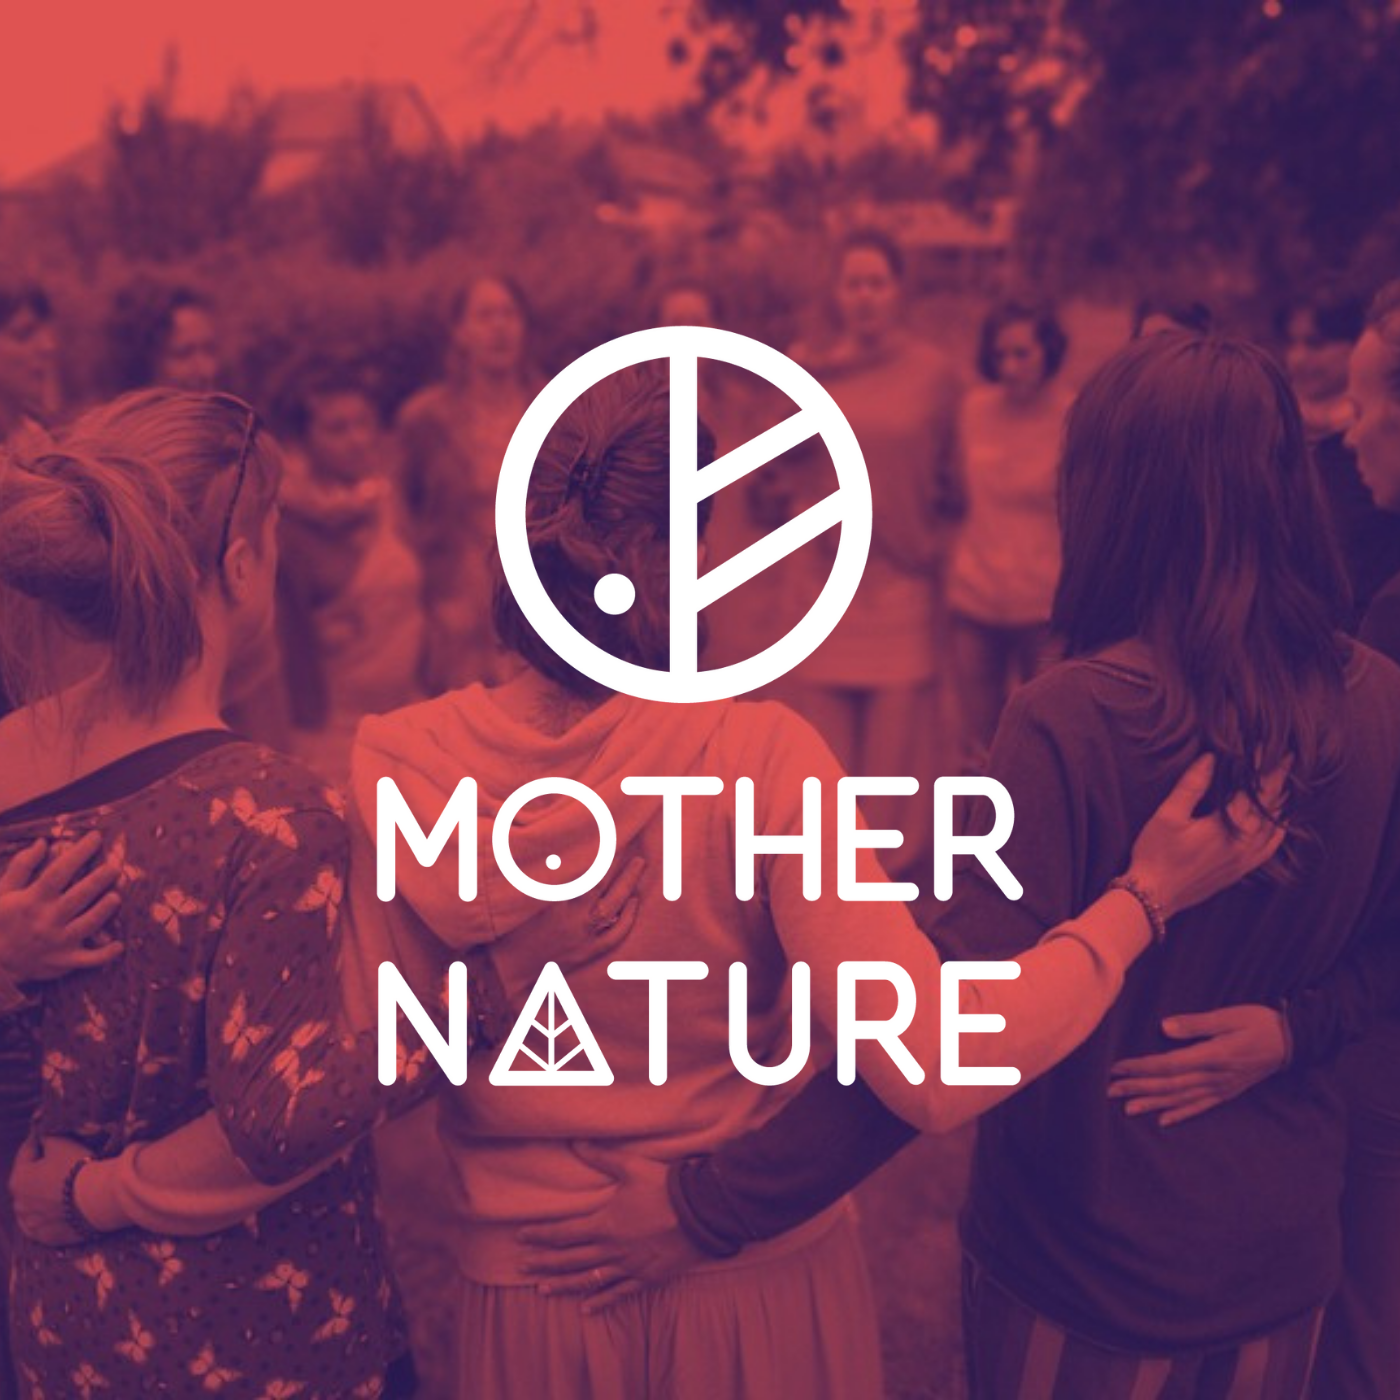 MOTHER NATURE association